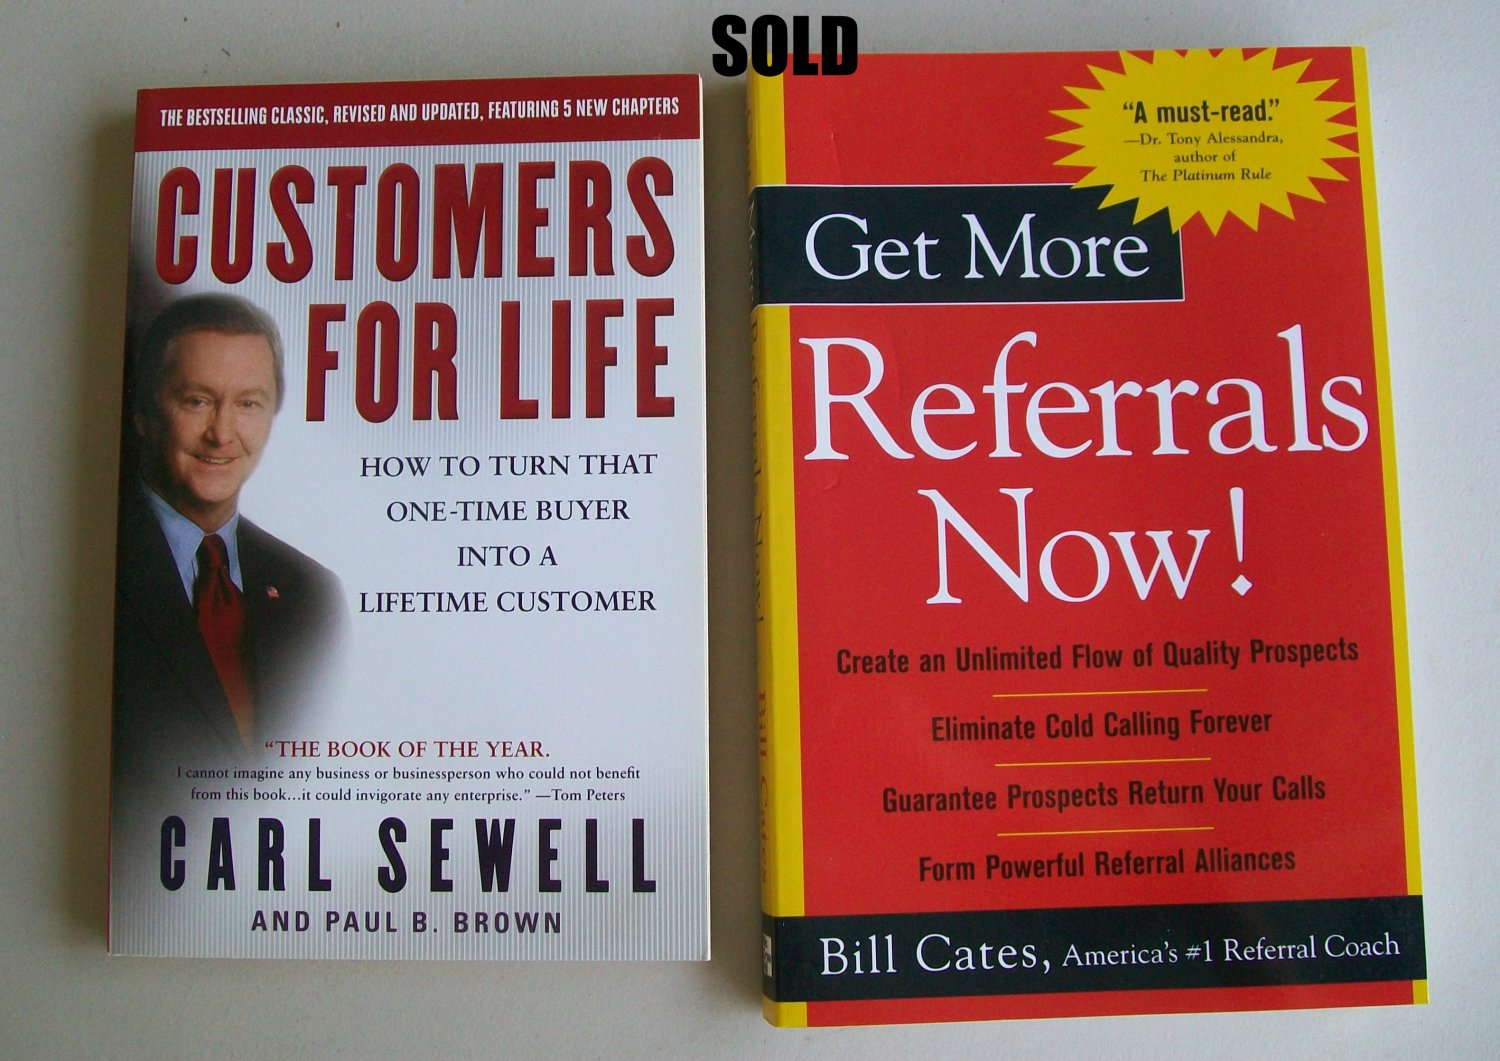 customers for life carl sewell summary